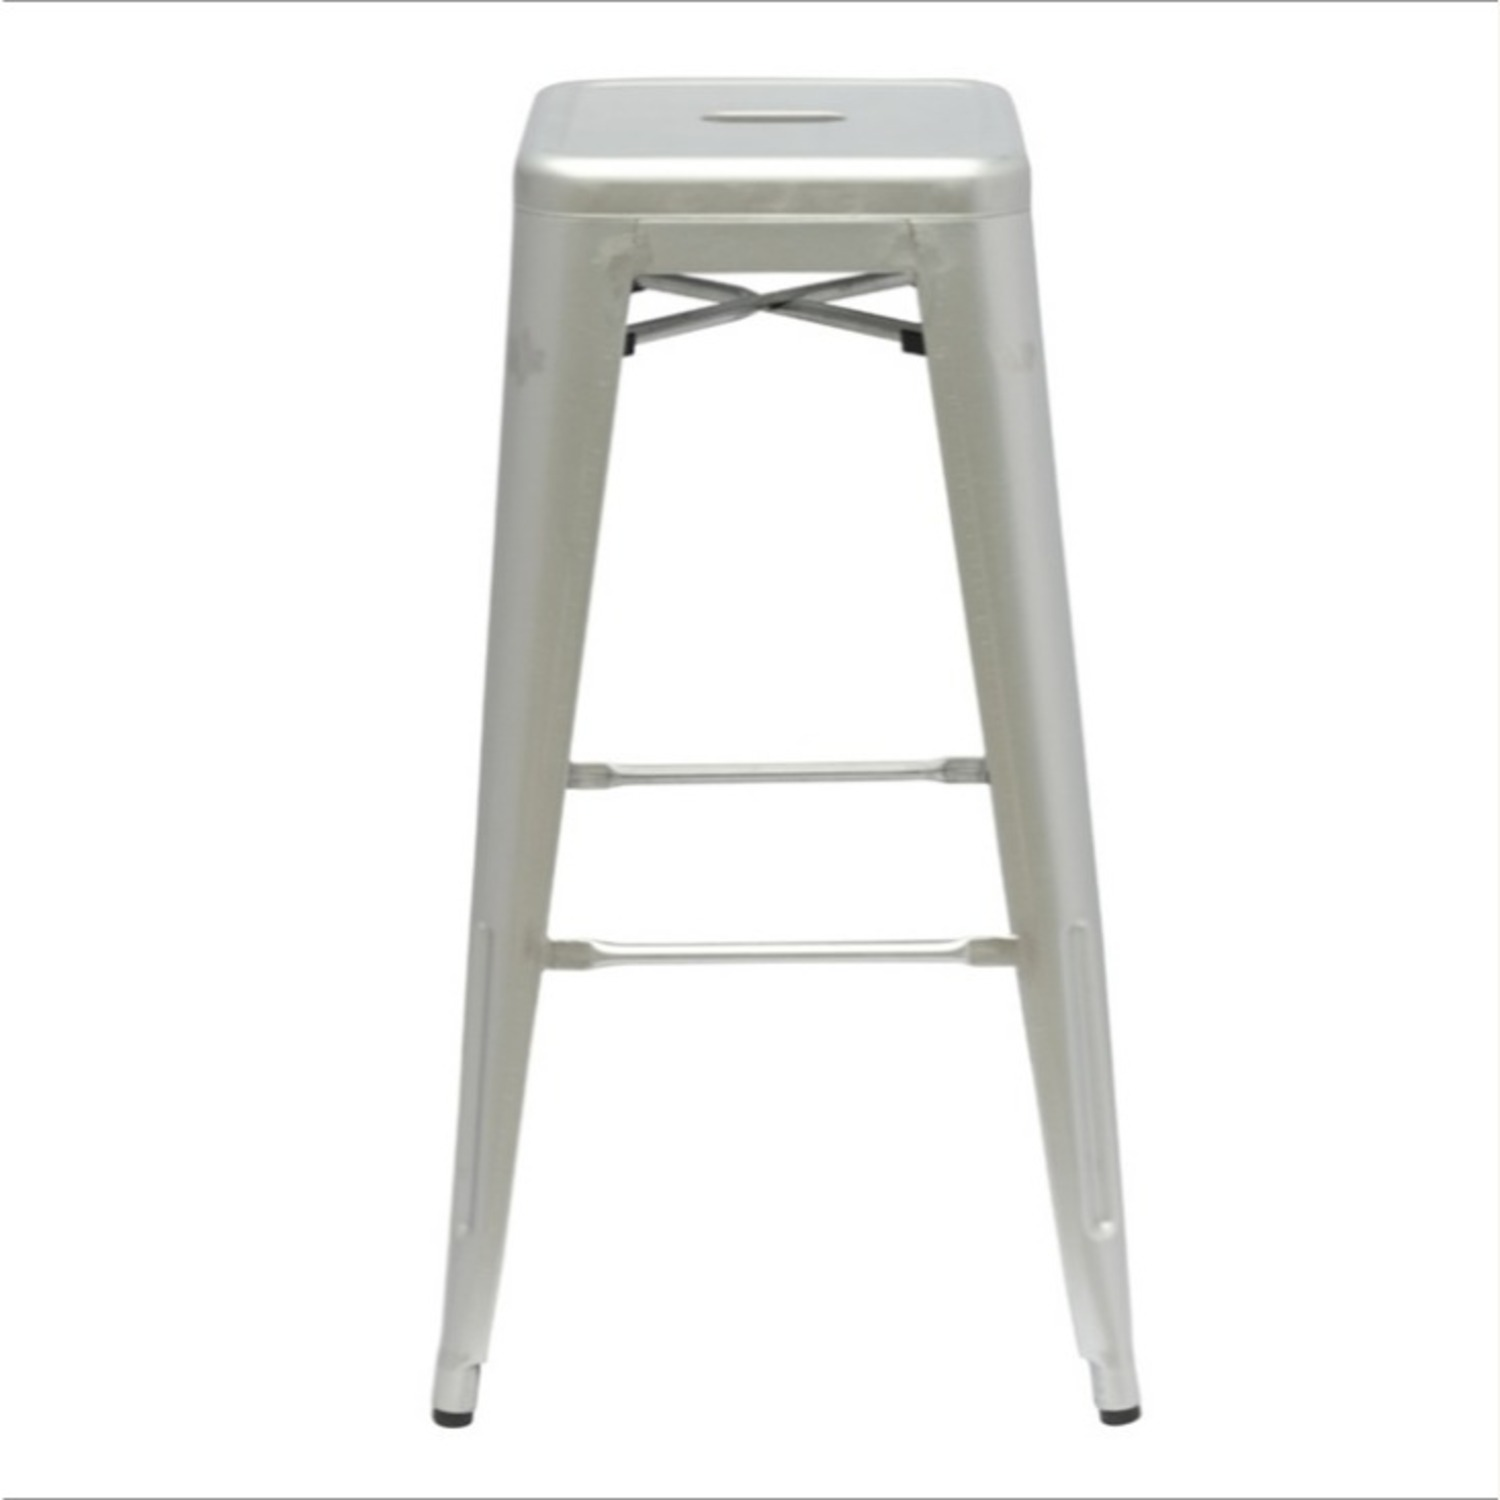 Contemporary Bar Stool In Silver Galvanized Steel - image-1